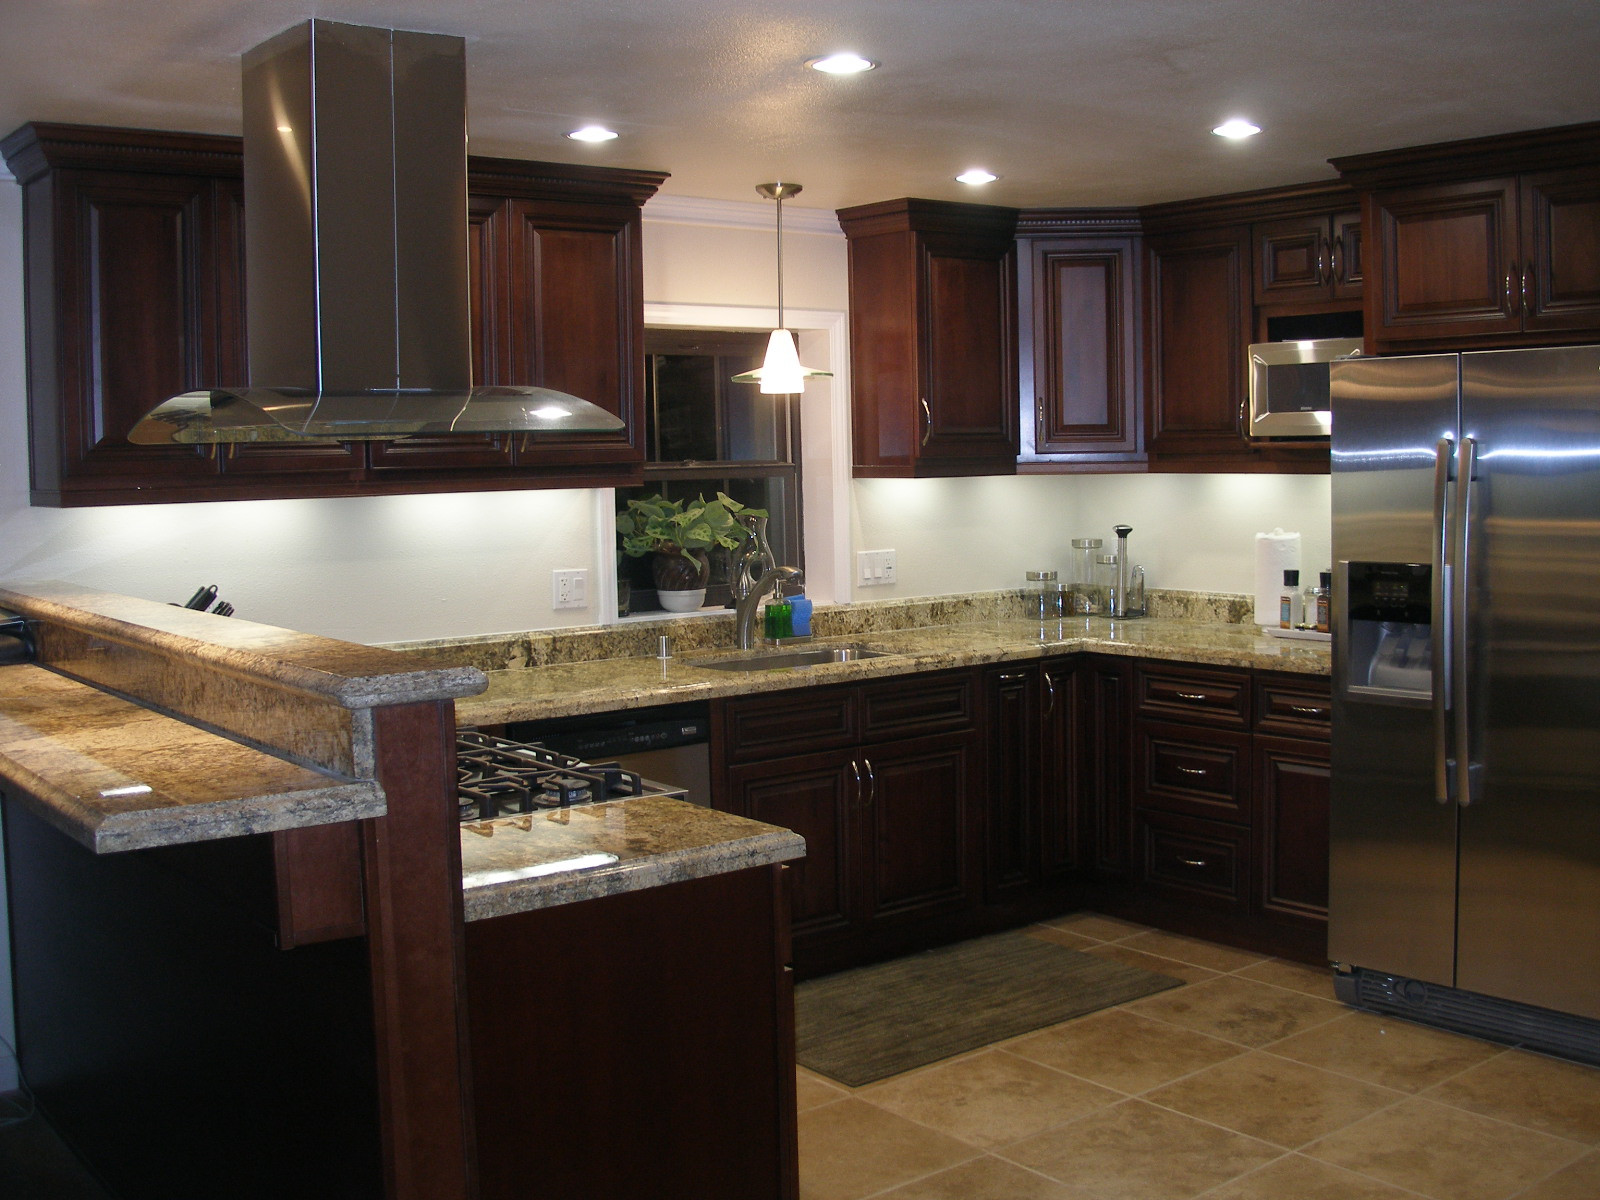 Kitchen remodel bay easy construction for Small kitchen renovations